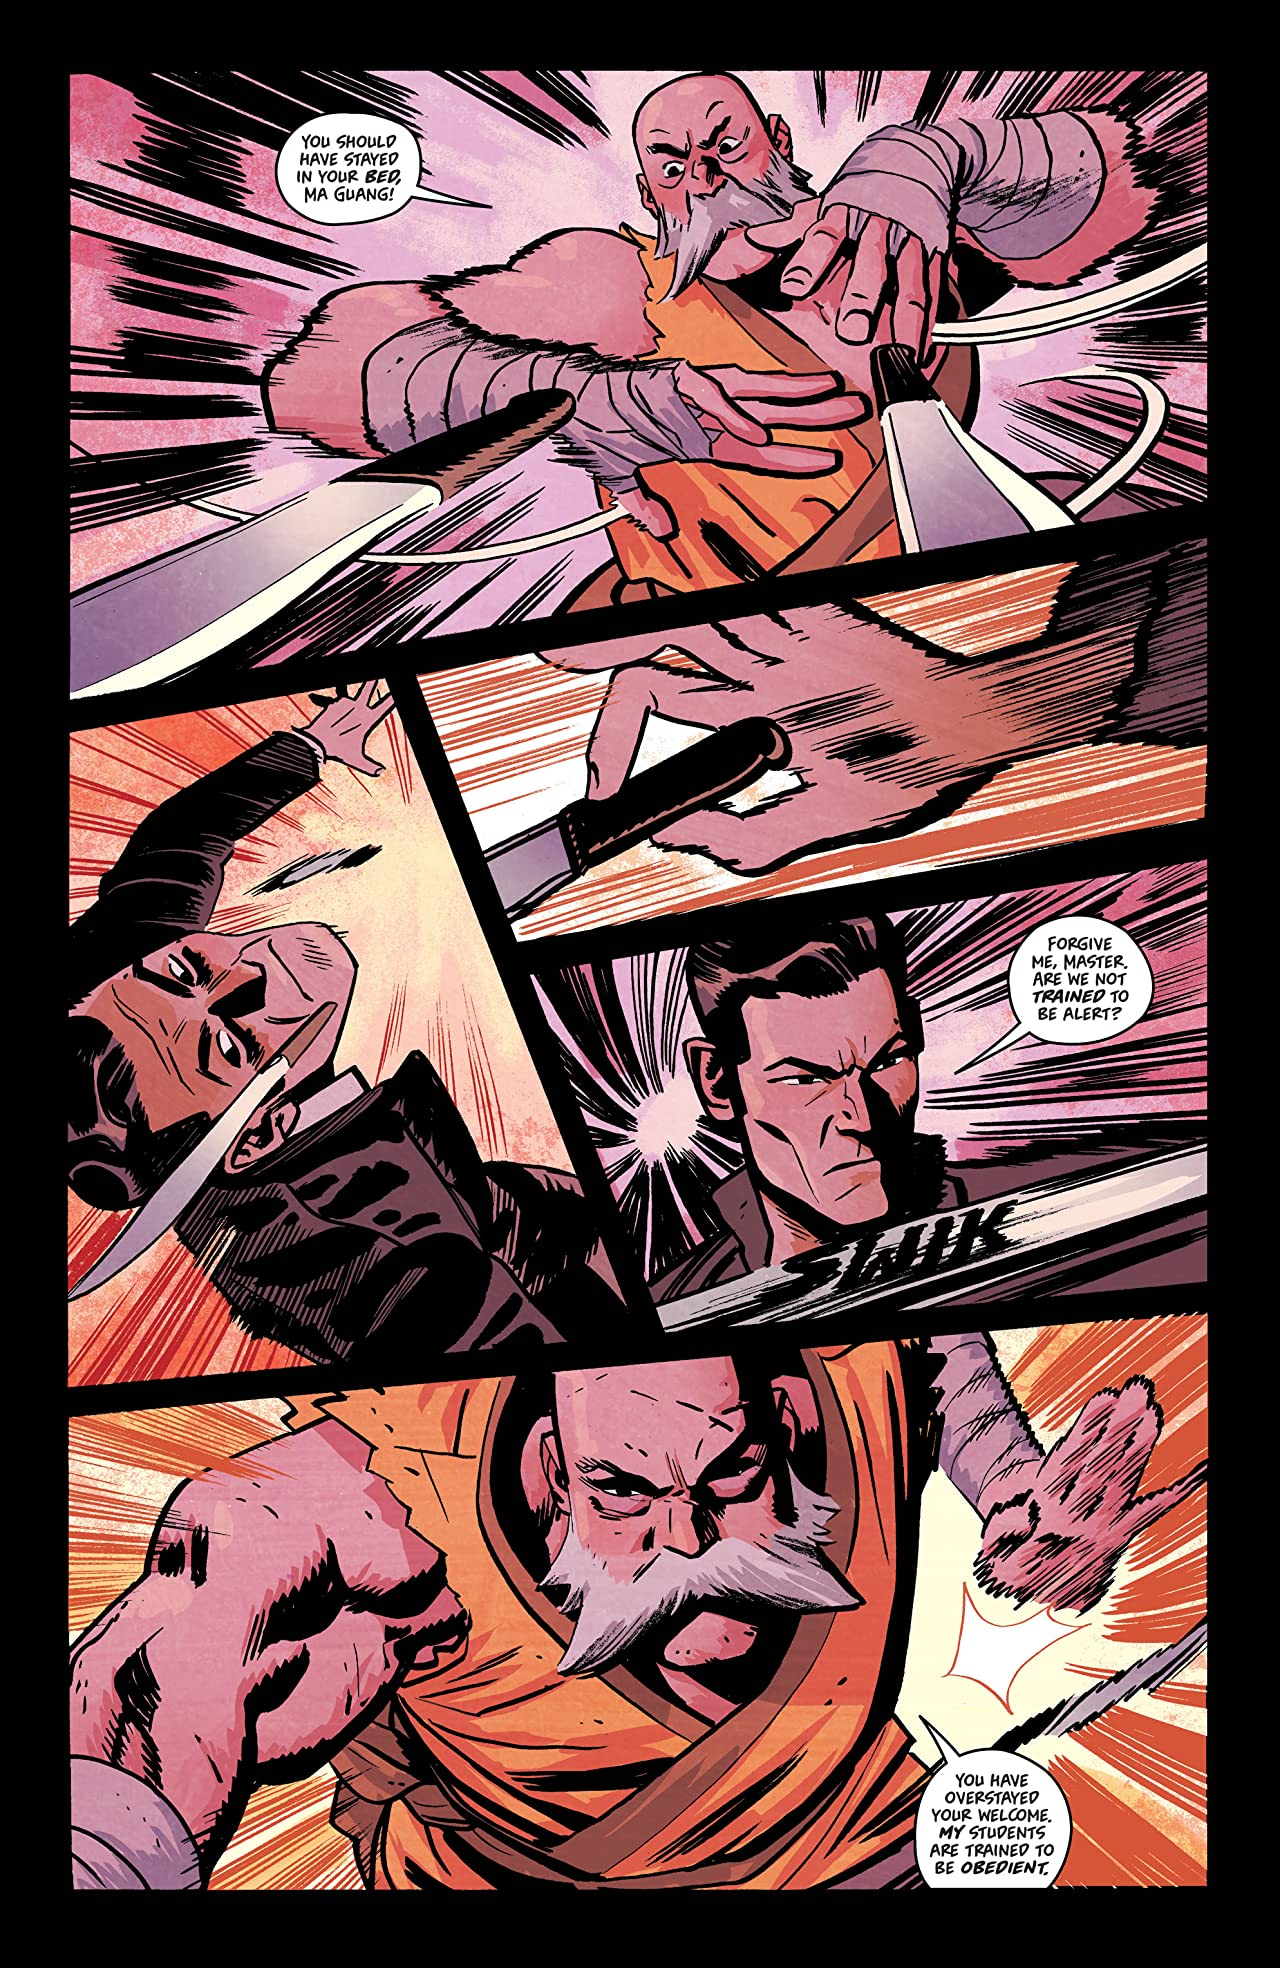 Fire Power by Kirkman & Samnee #8